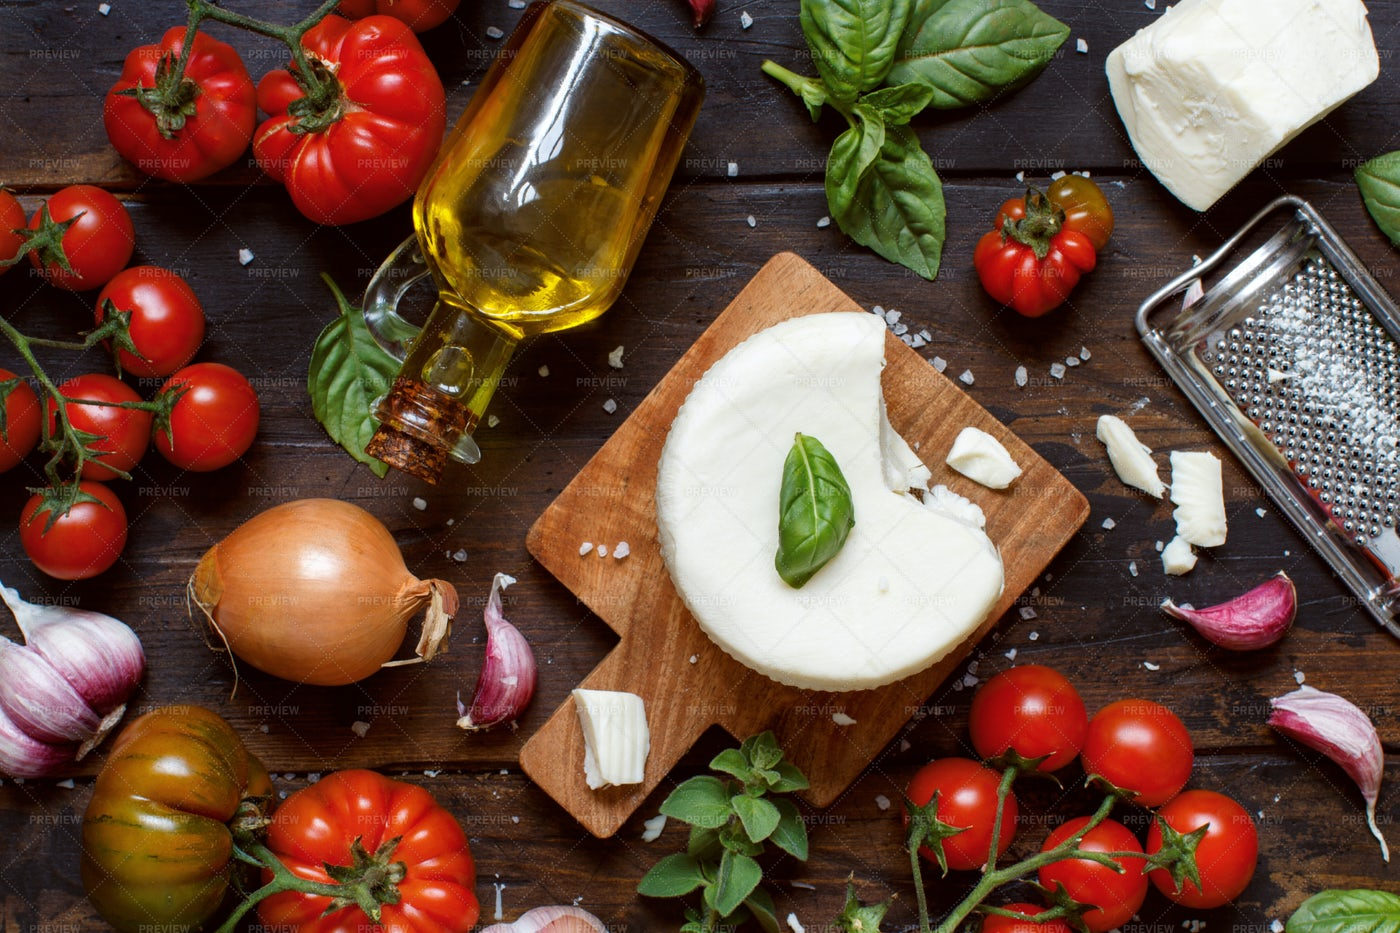 Cheese Cacioricotta And Vegetables: Stock Photos